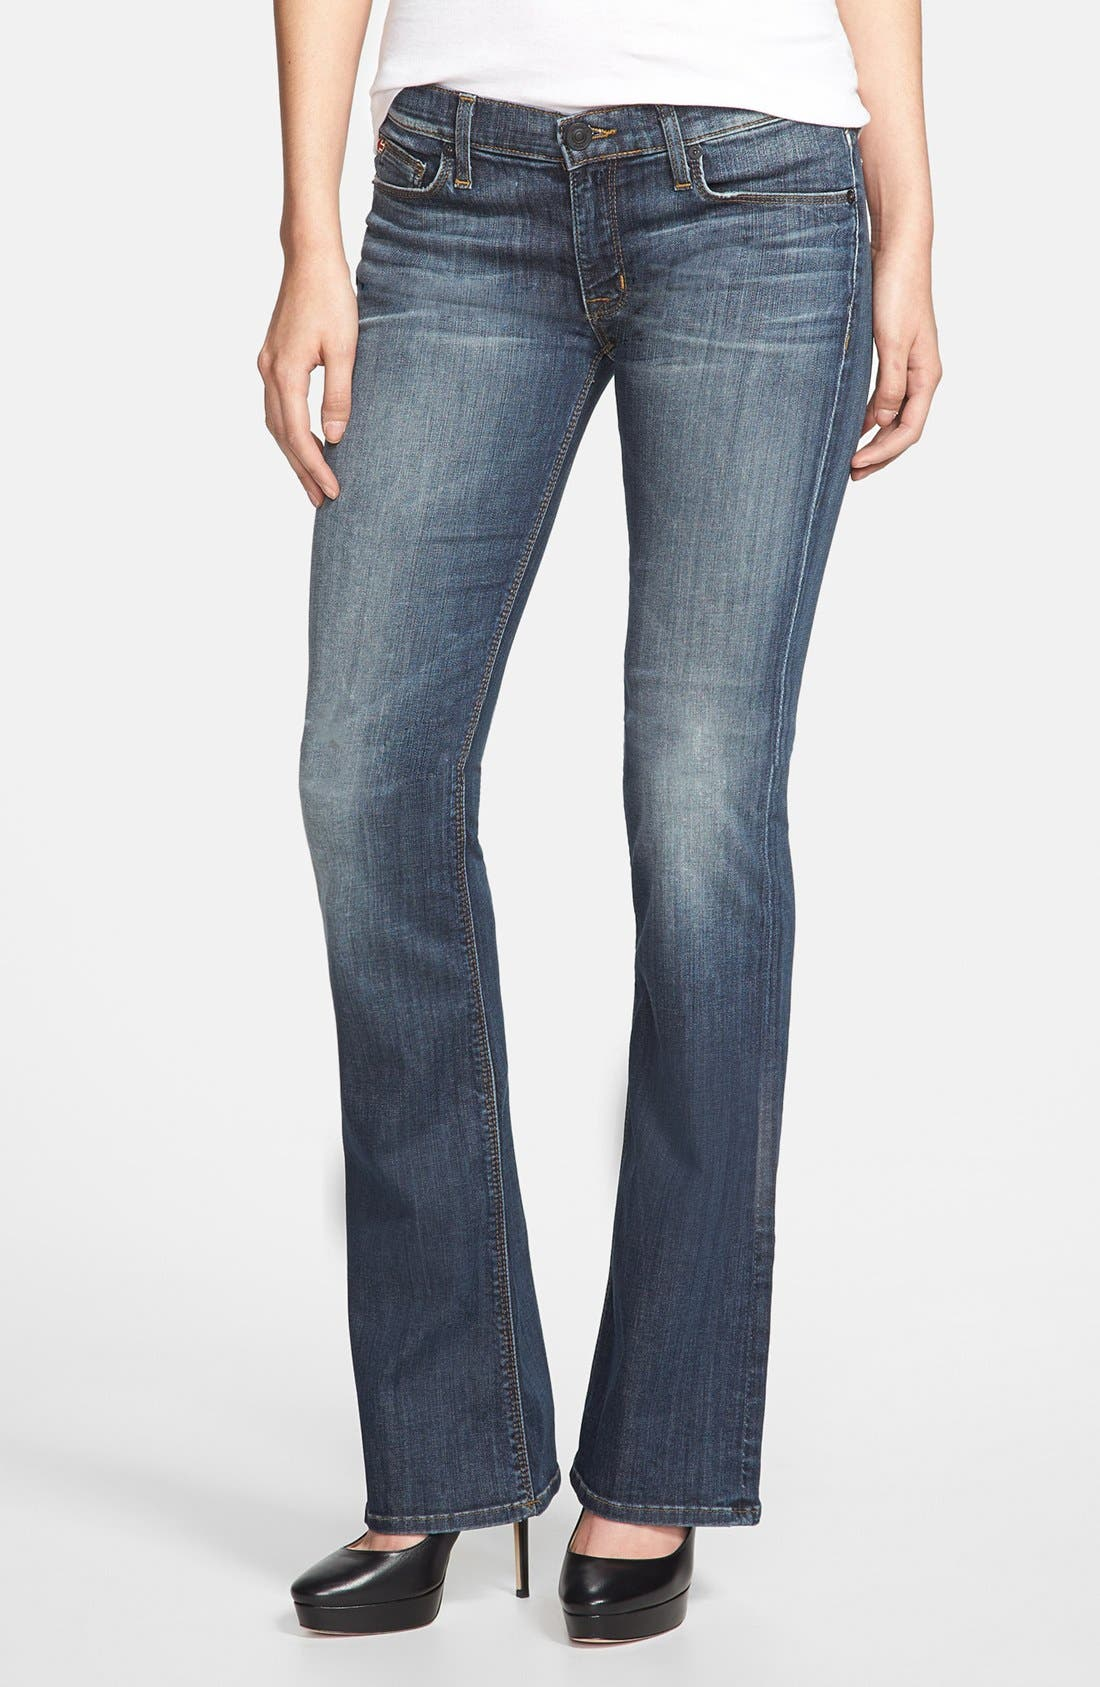 Alternate Image 1 Selected - Hudson Jeans 'Love' Low Rise Bootcut Jeans (Glam)